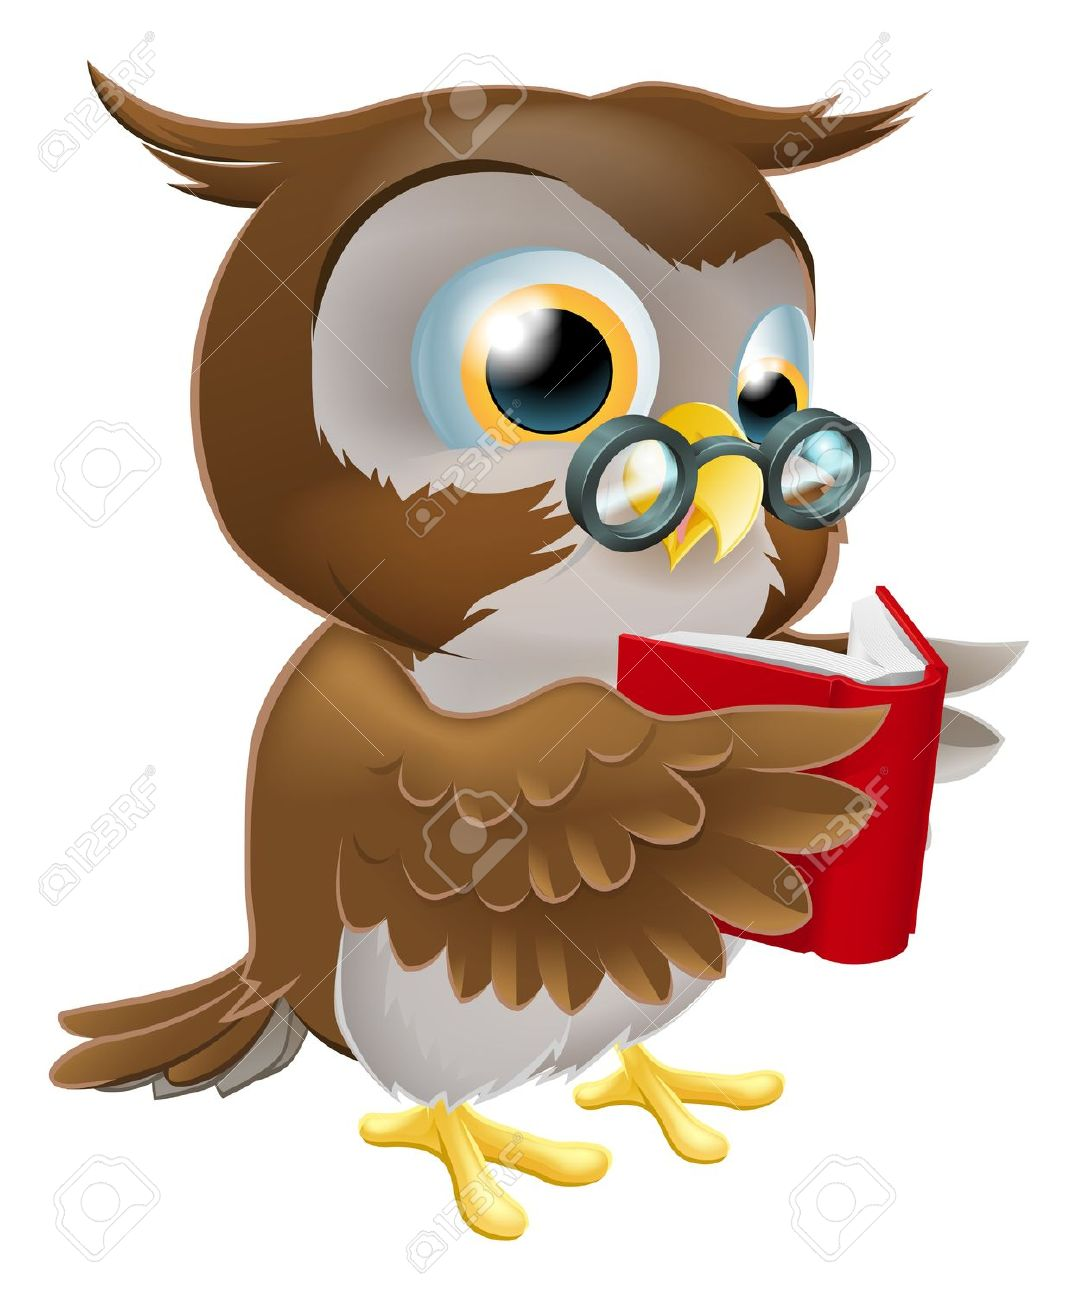 An Illustration Of A Cute Wise Cartoon Owl Character Wearing